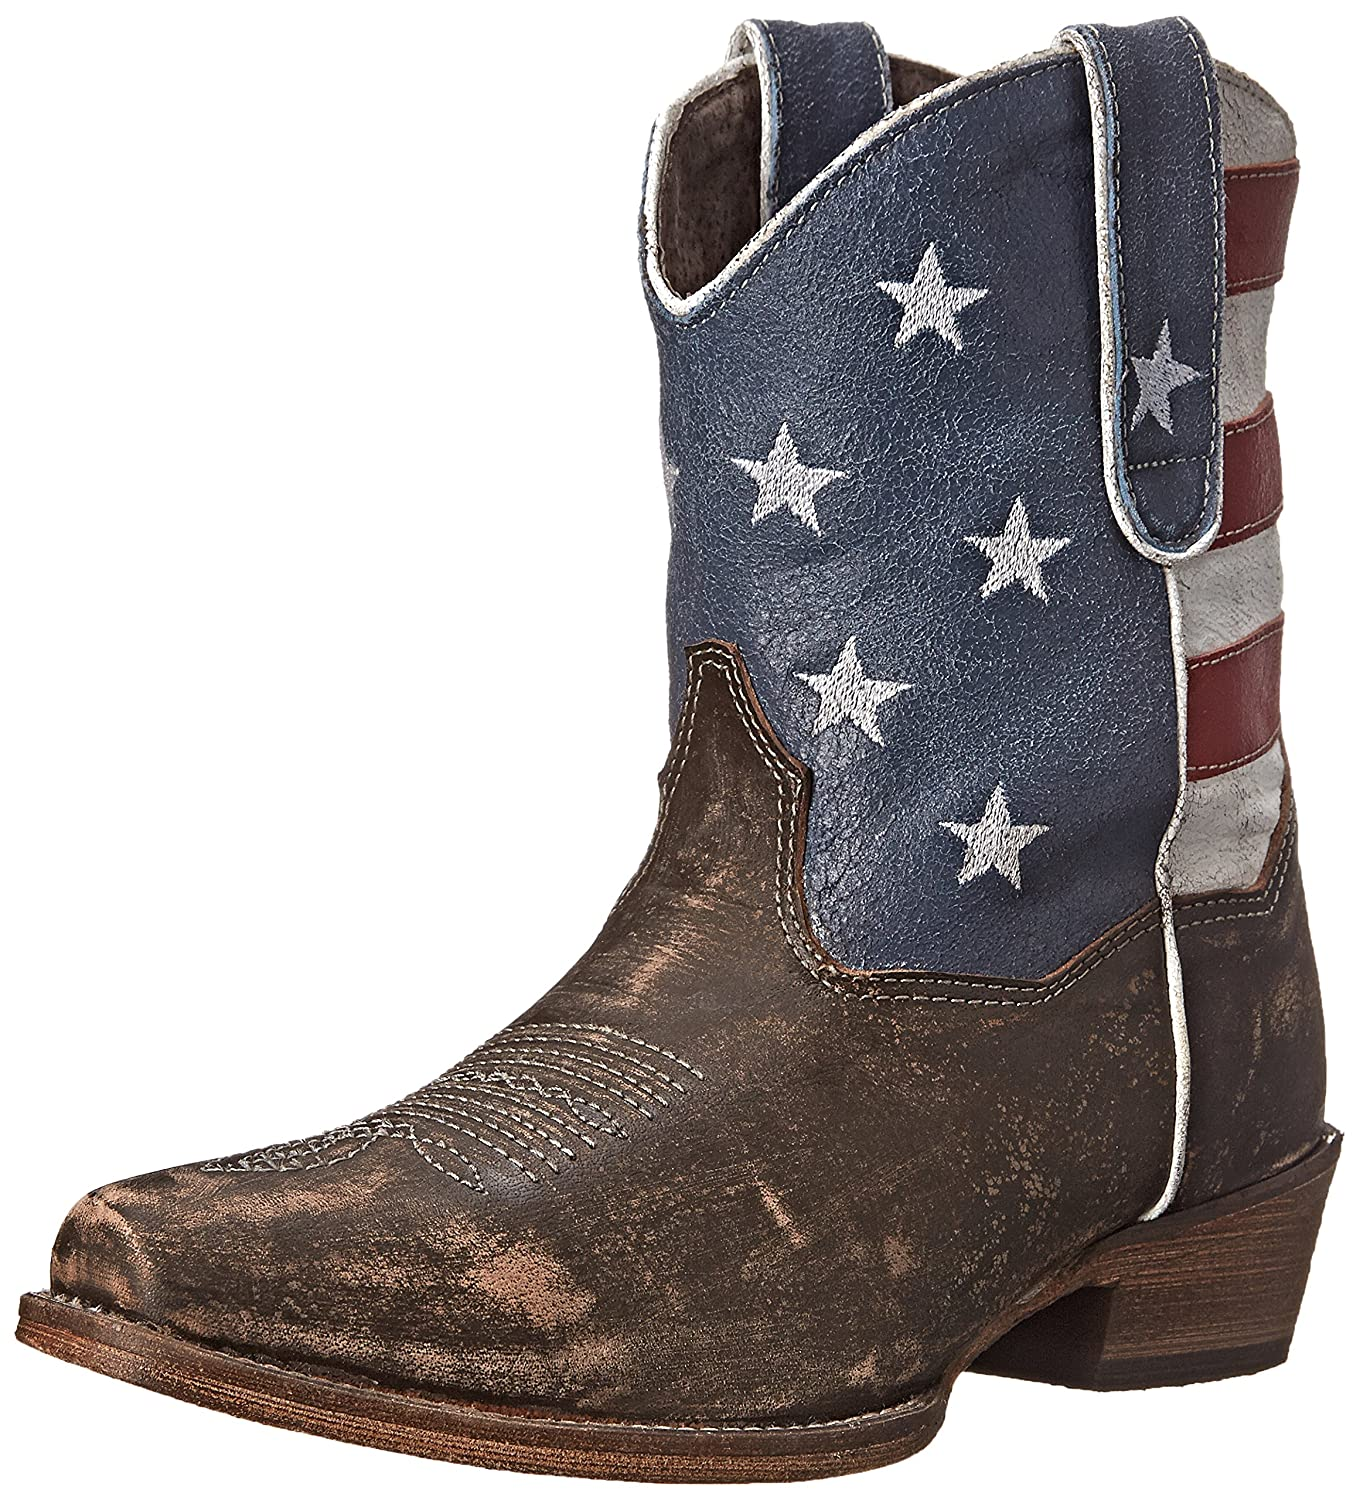 Roper Women's American Beauty Western Boot B00T07WRBY 8 B(M) US|Brown